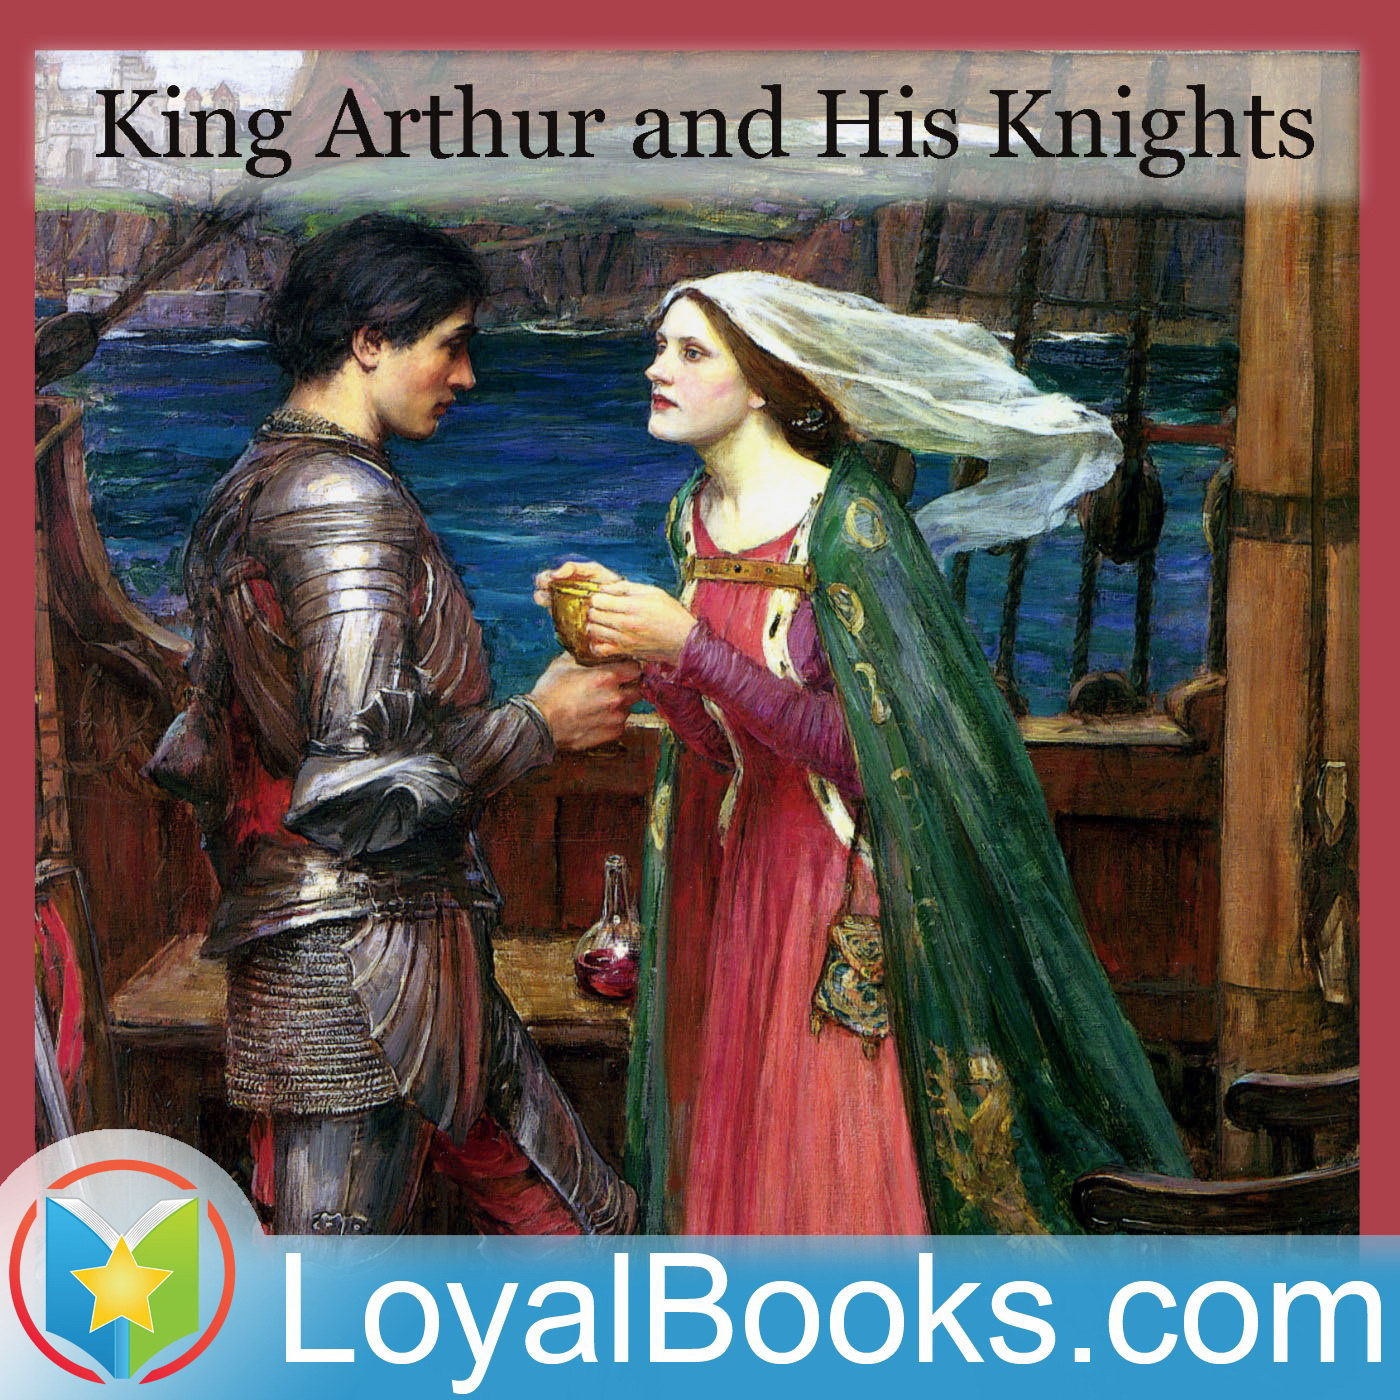 <![CDATA[King Arthur and His Knights by Maude L. Radford]]>